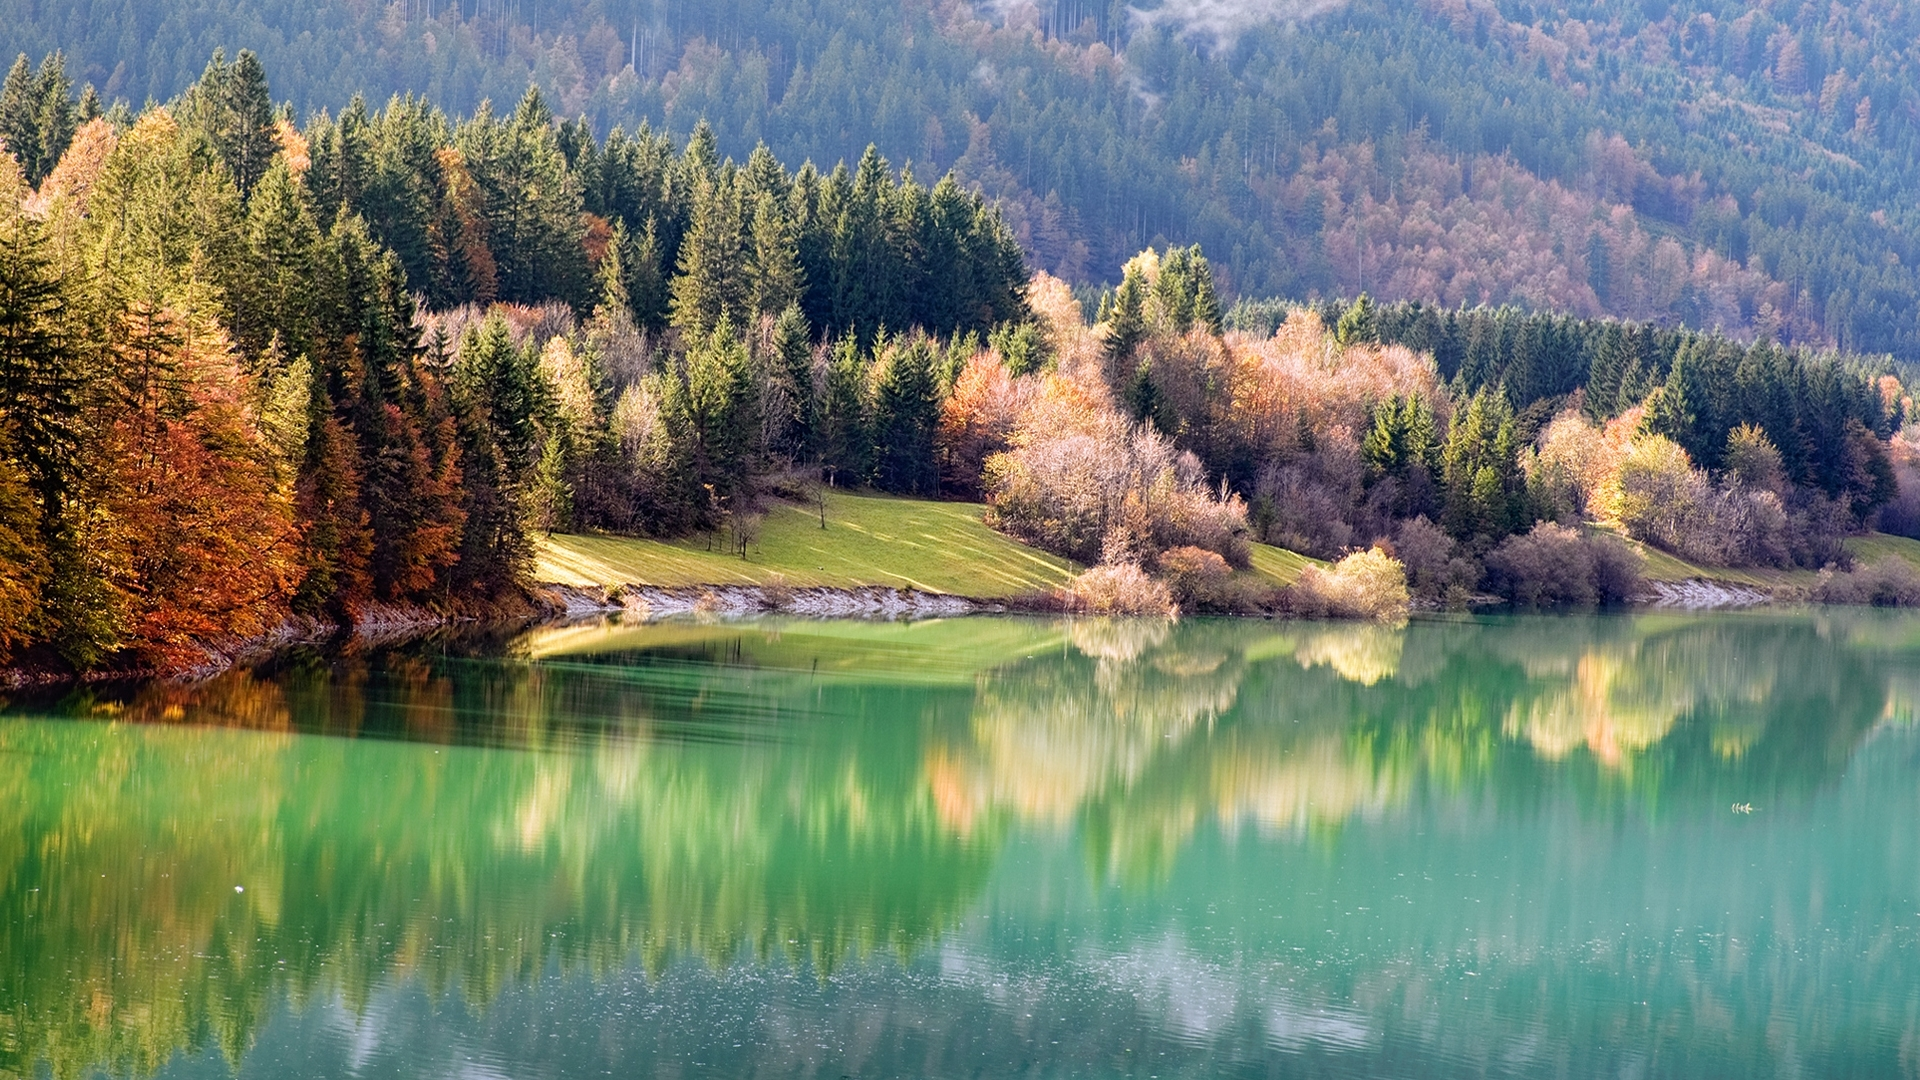 48981 download wallpaper Landscape, Nature, Trees, Lakes screensavers and pictures for free